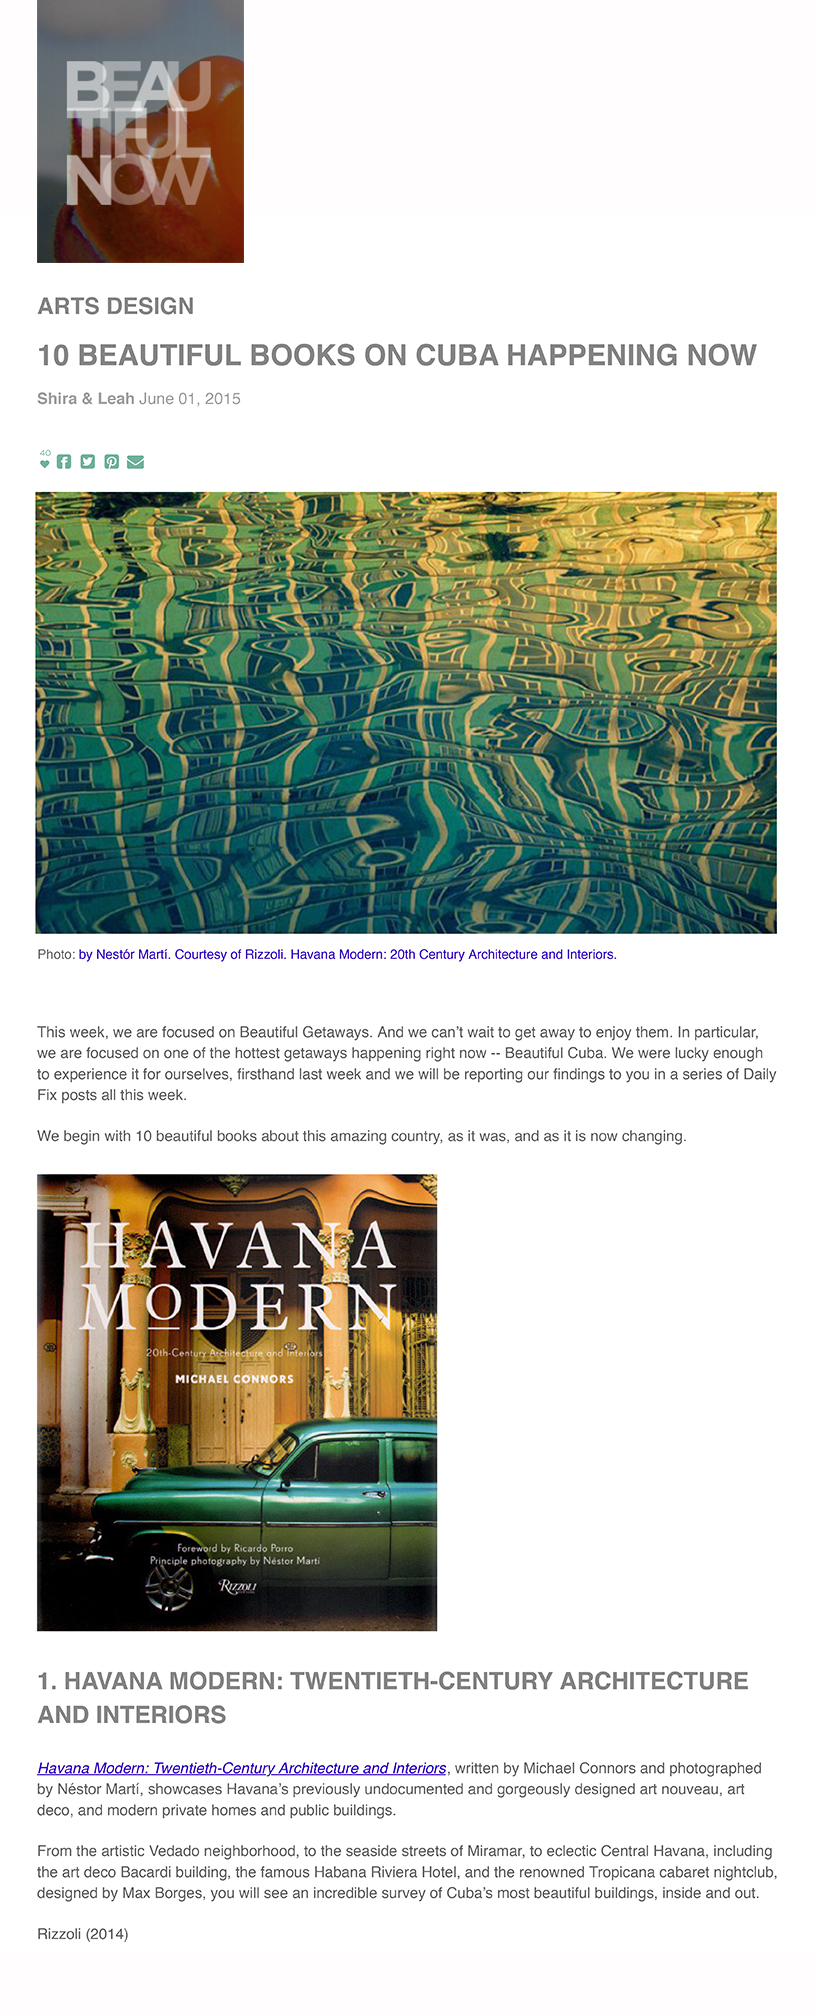 BeautifulNow-is-Beautiful-Now---10-Beautiful-Books-On-Cuba-Happening-Now-01-copy